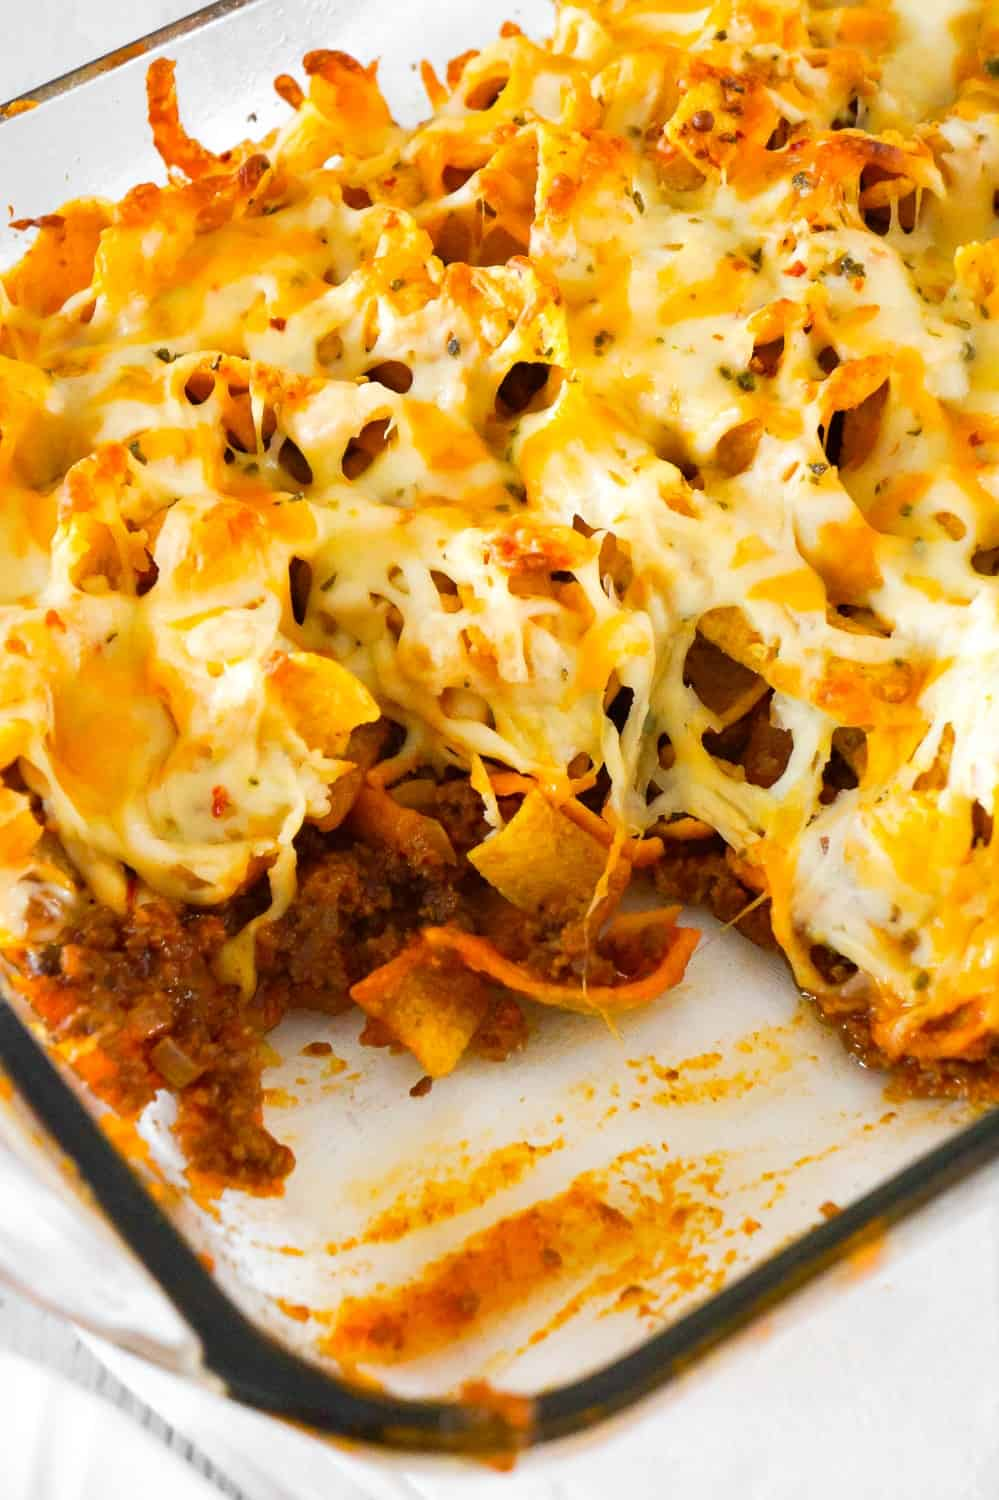 Sloppy Joe Frito Pie is an easy ground beef dinner recipe perfect for weeknights. Ground beef and onions are tossed in homemade sloppy joe sauce and then topped with Frito's corn chips and cheddar cheese.